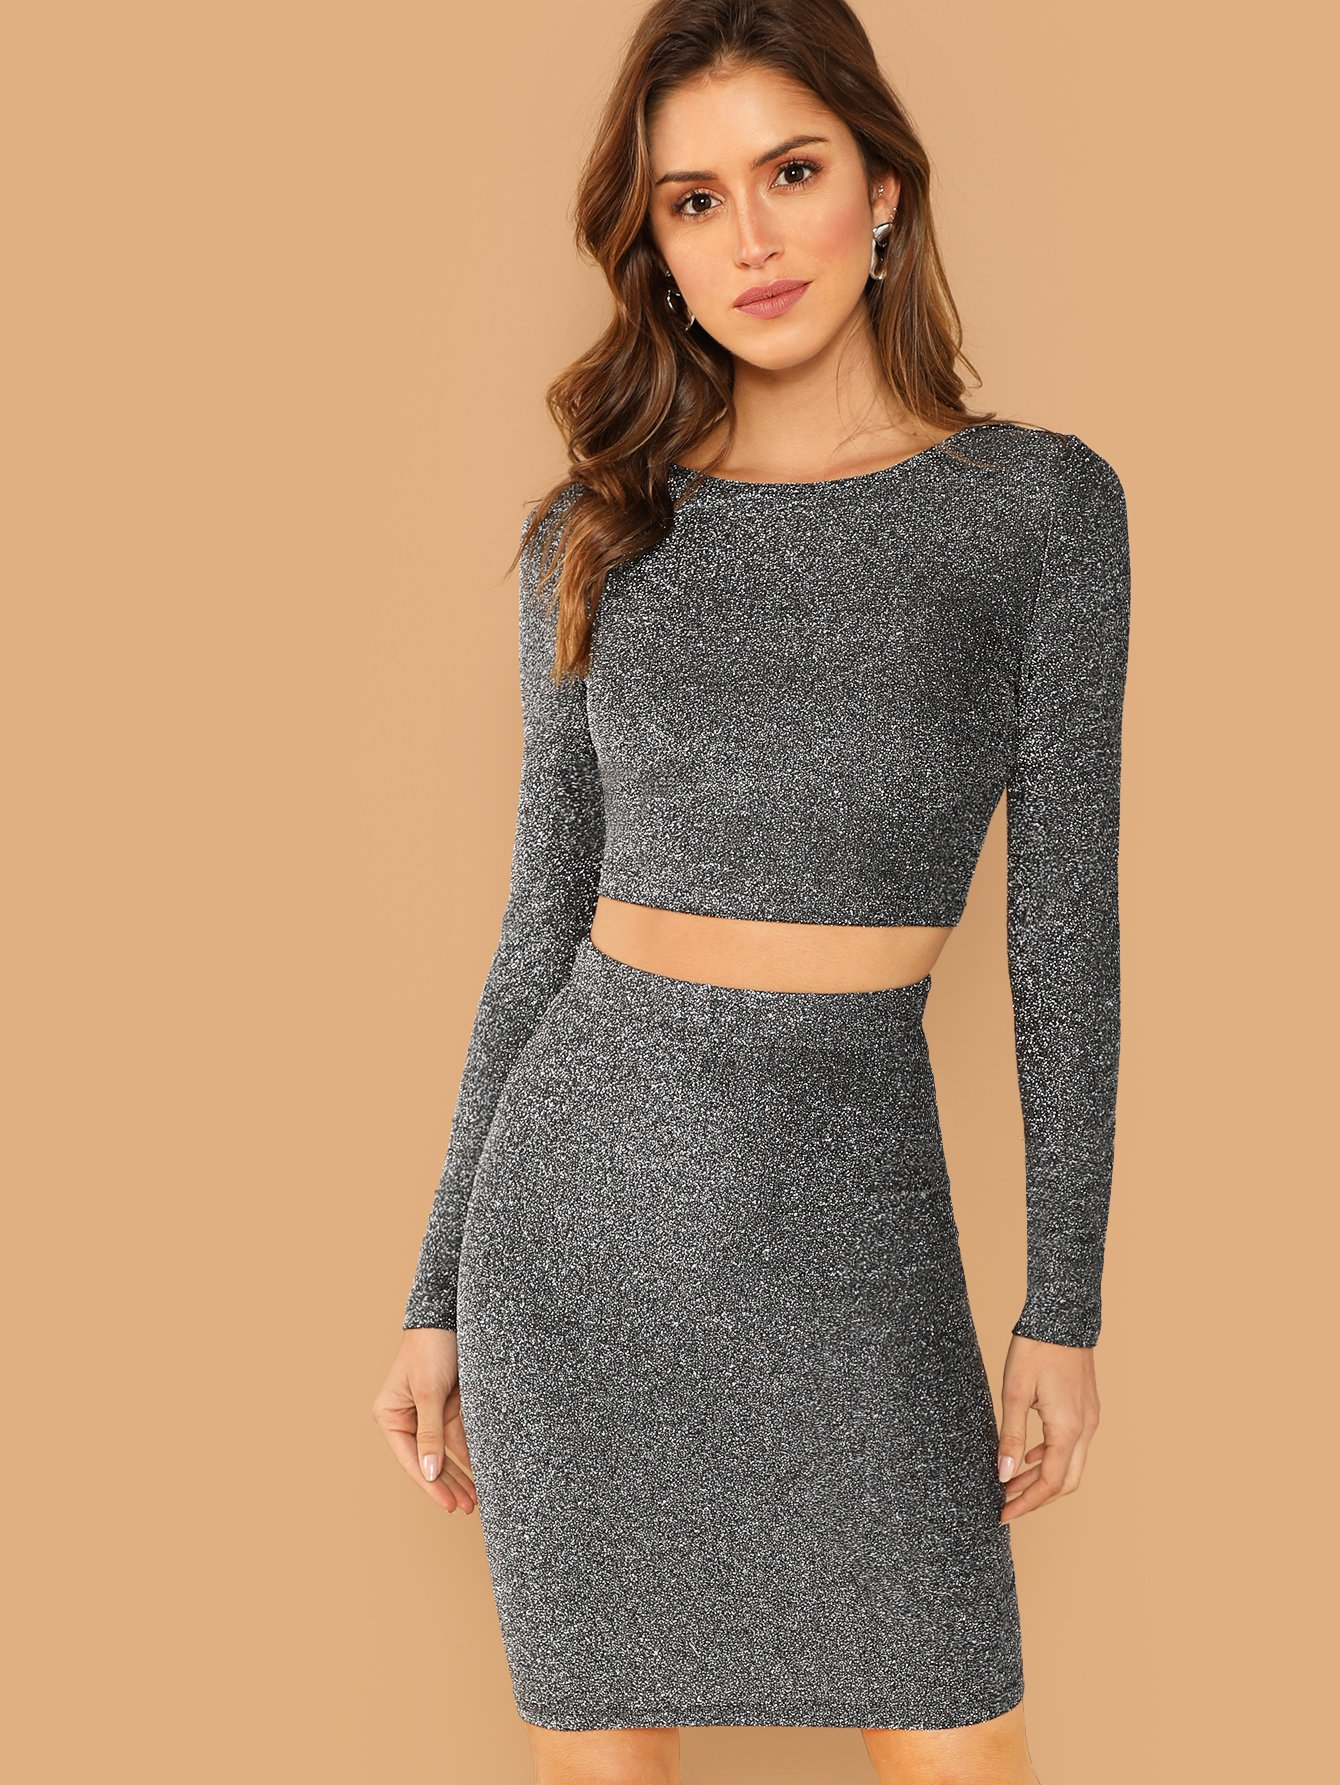 f01382a4f4 Buy Crop Form Fitting Glitter Top and Bodycon Skirt Set ...